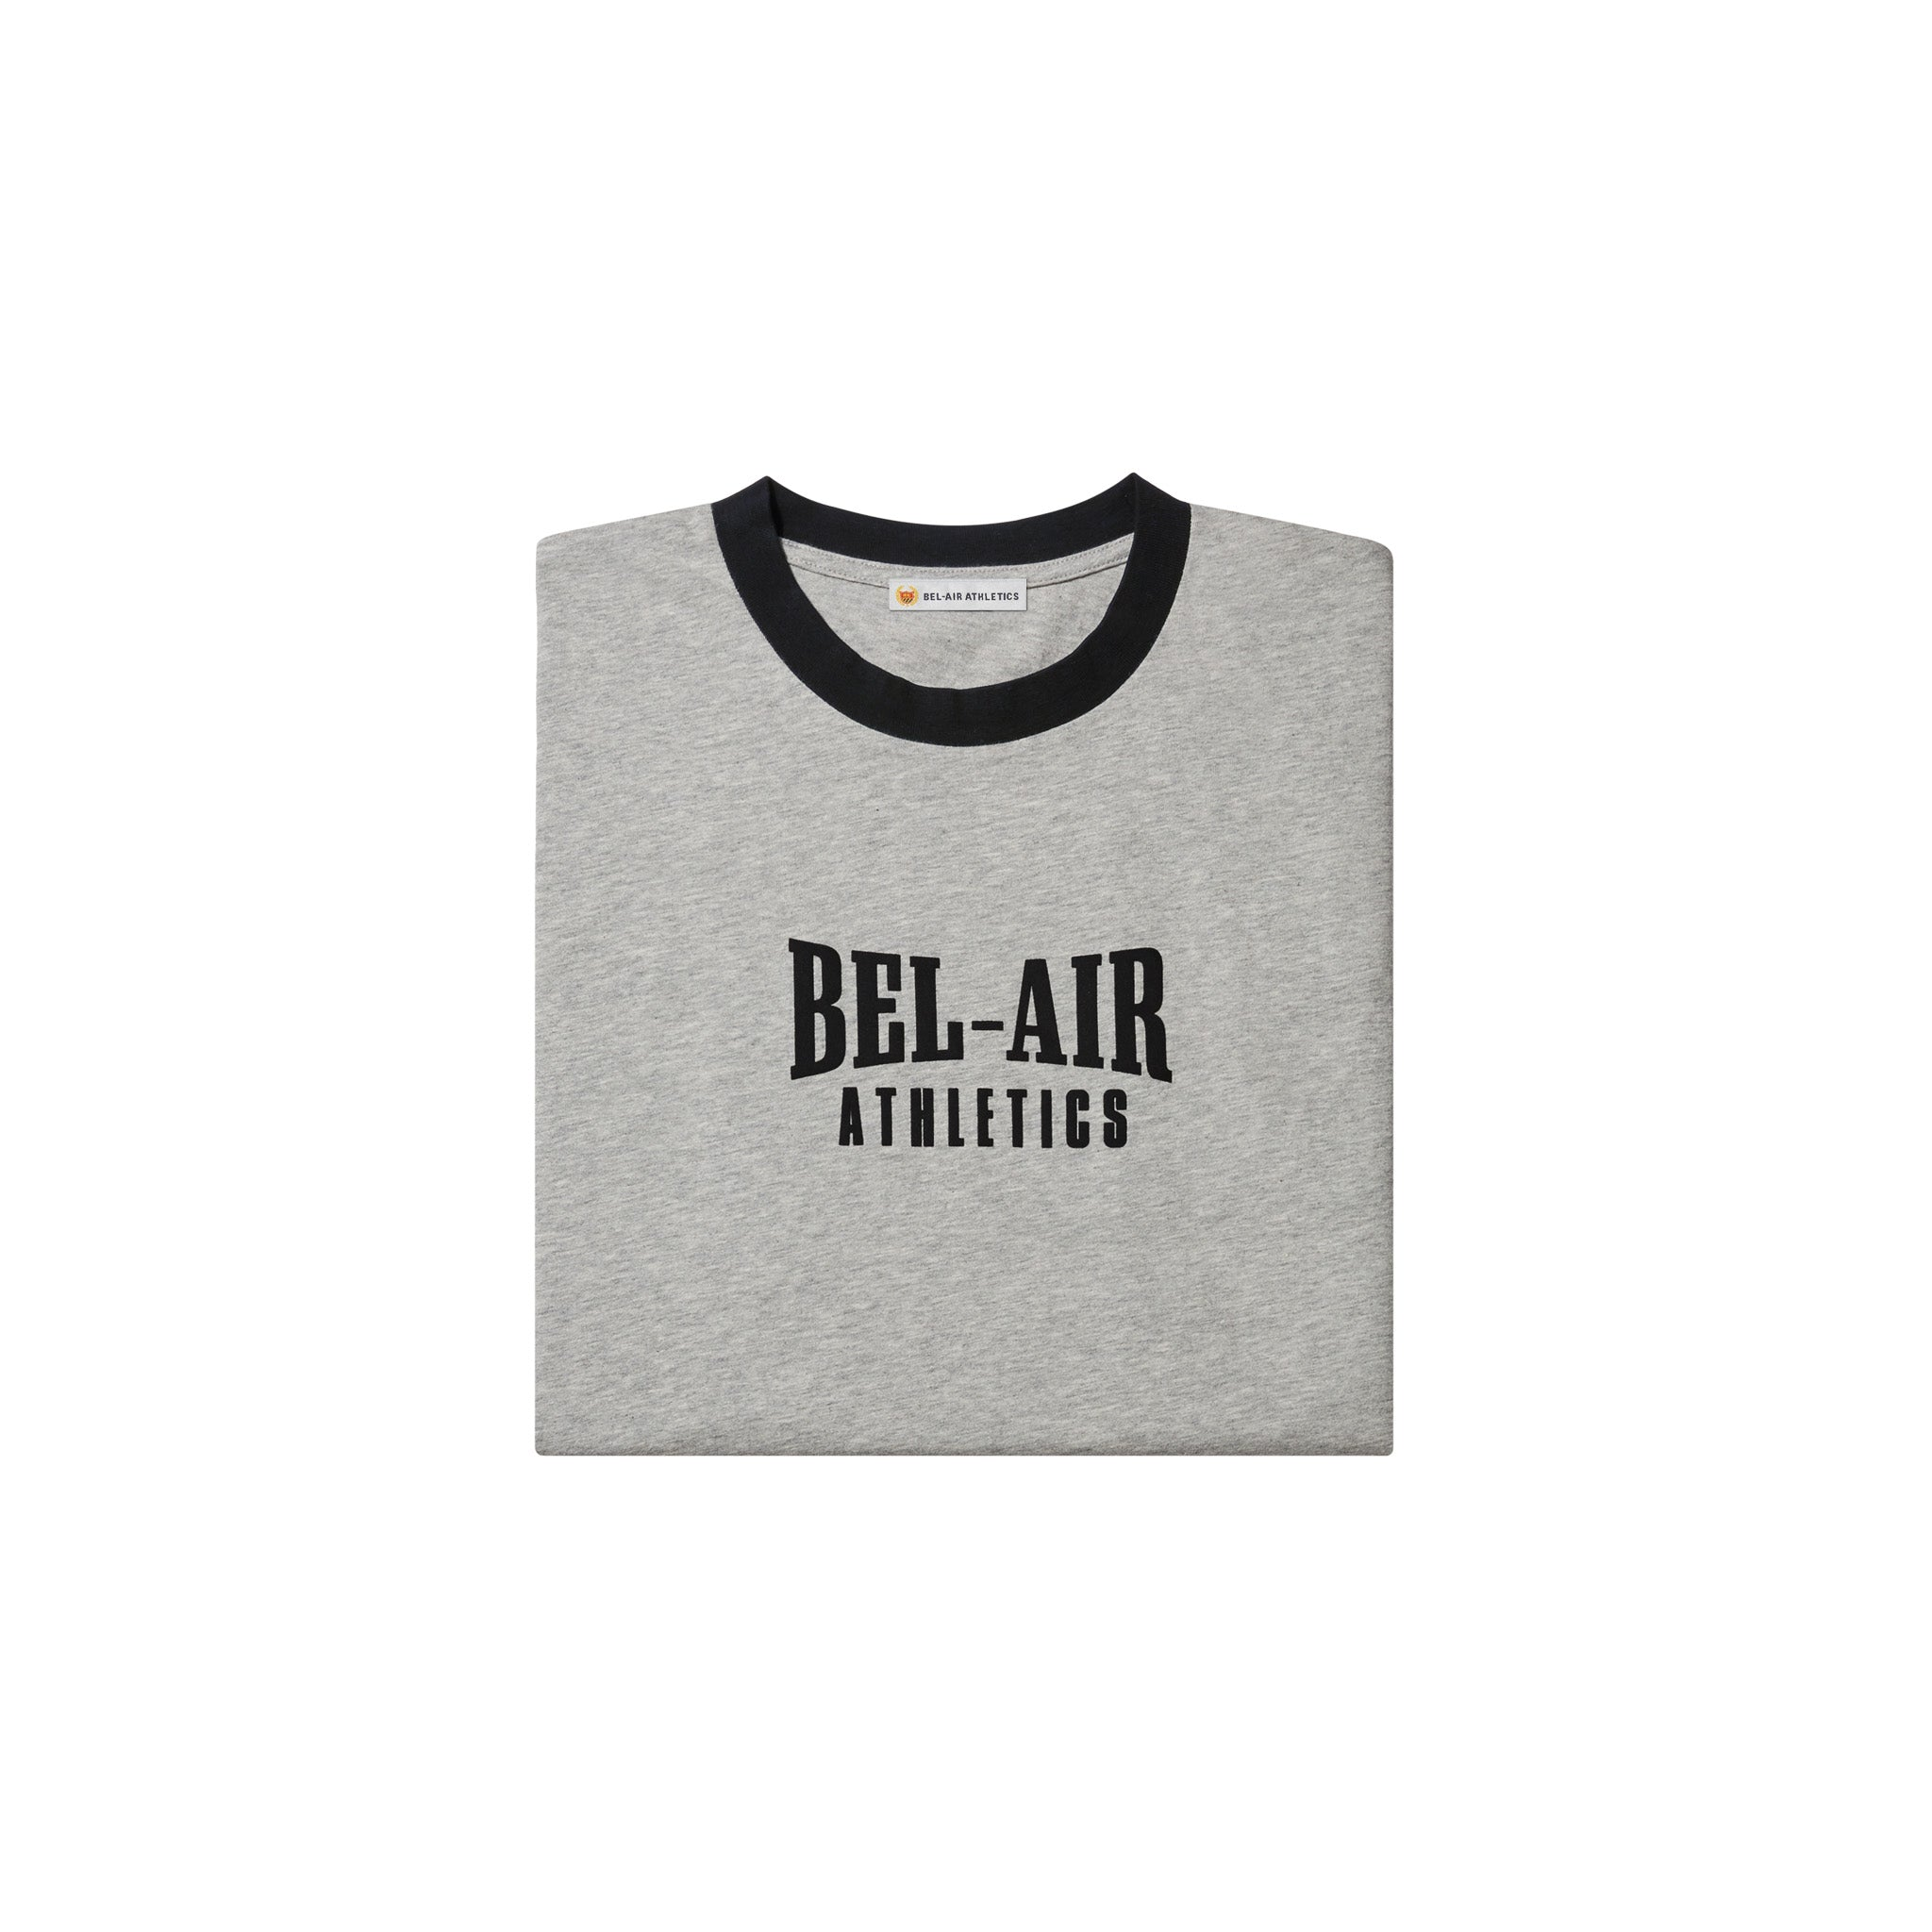 Puff print logo tshirt - Colorblock Athletic Grey+Vintage Black